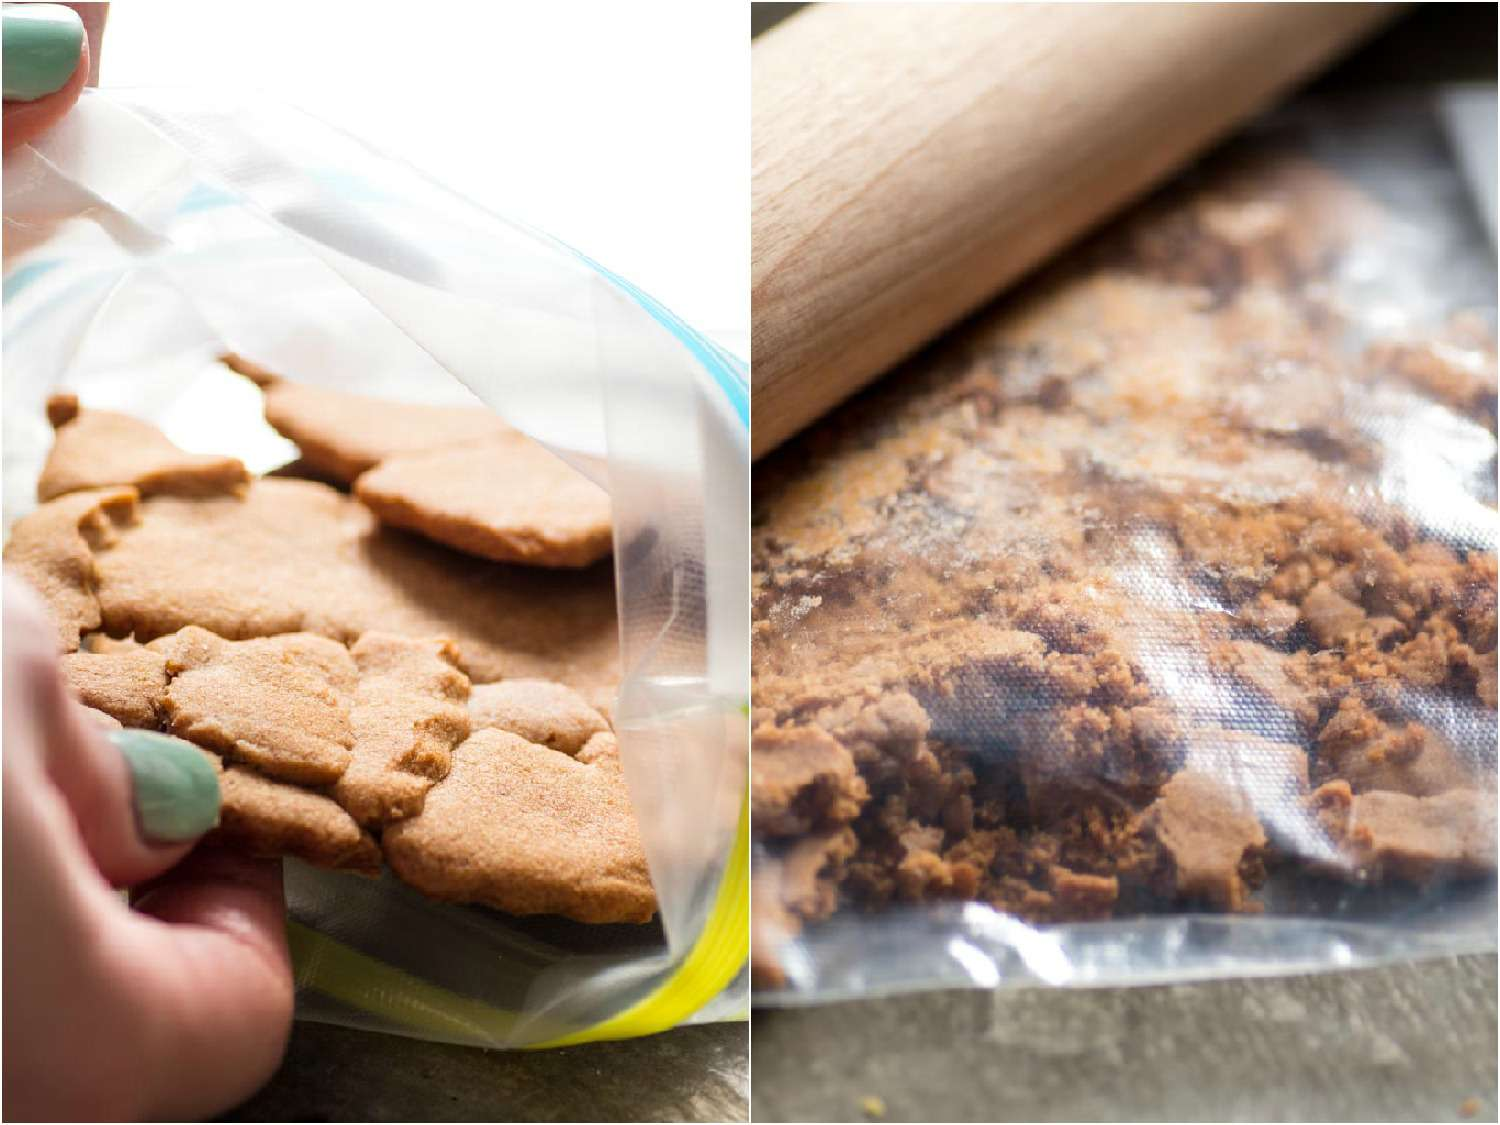 Cookie scraps in a bag being crushed by a rolling pin